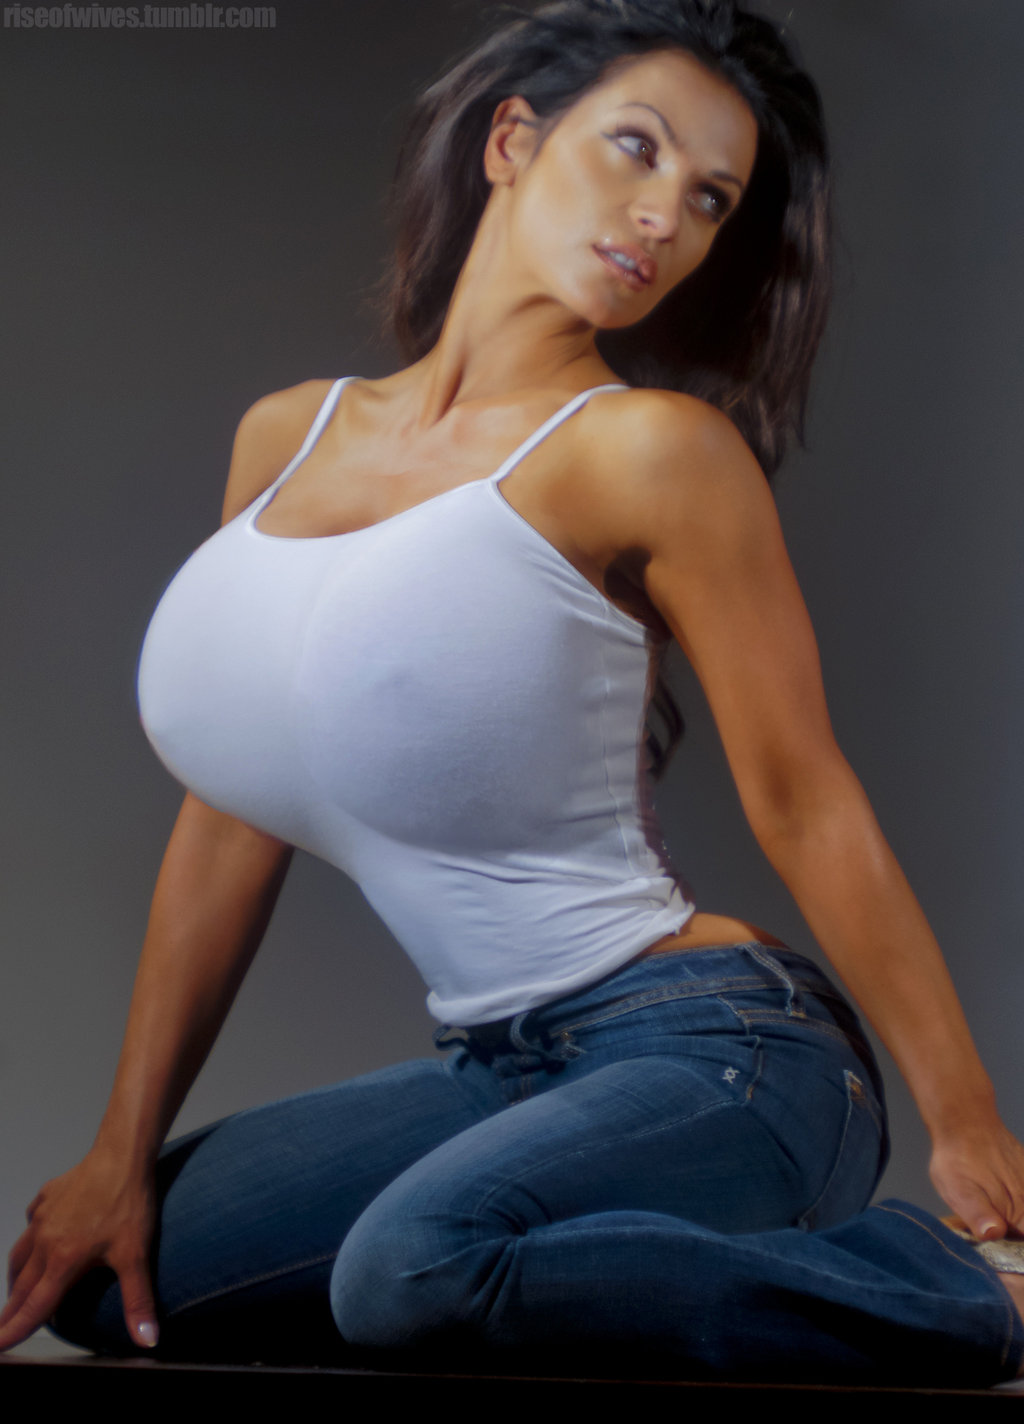 denise milani busty - photo #27